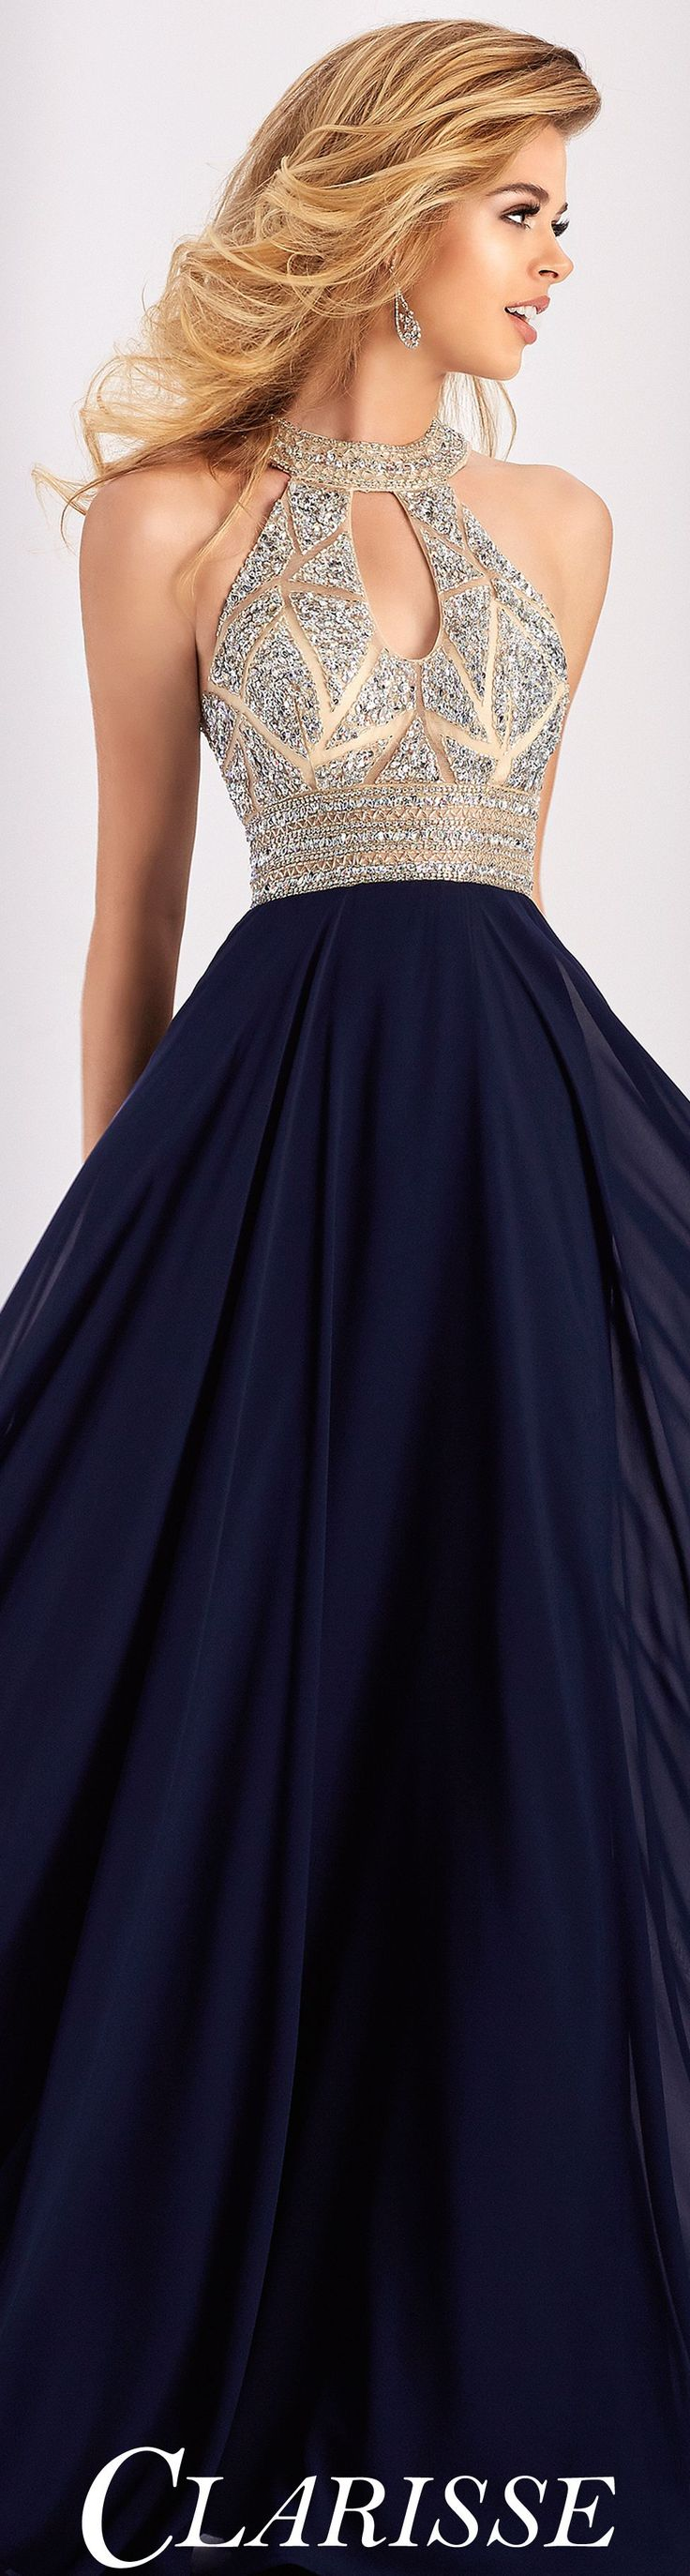 Clarisse Prom Dress 3087.  Chiffon prom dress featuring a halter neckline, open back and crystal embellishments. COLOR: Navy SIZE: 0-24 Warehouse Sales On Designer Clothes 90% OFF. Free Shipping On All Products at